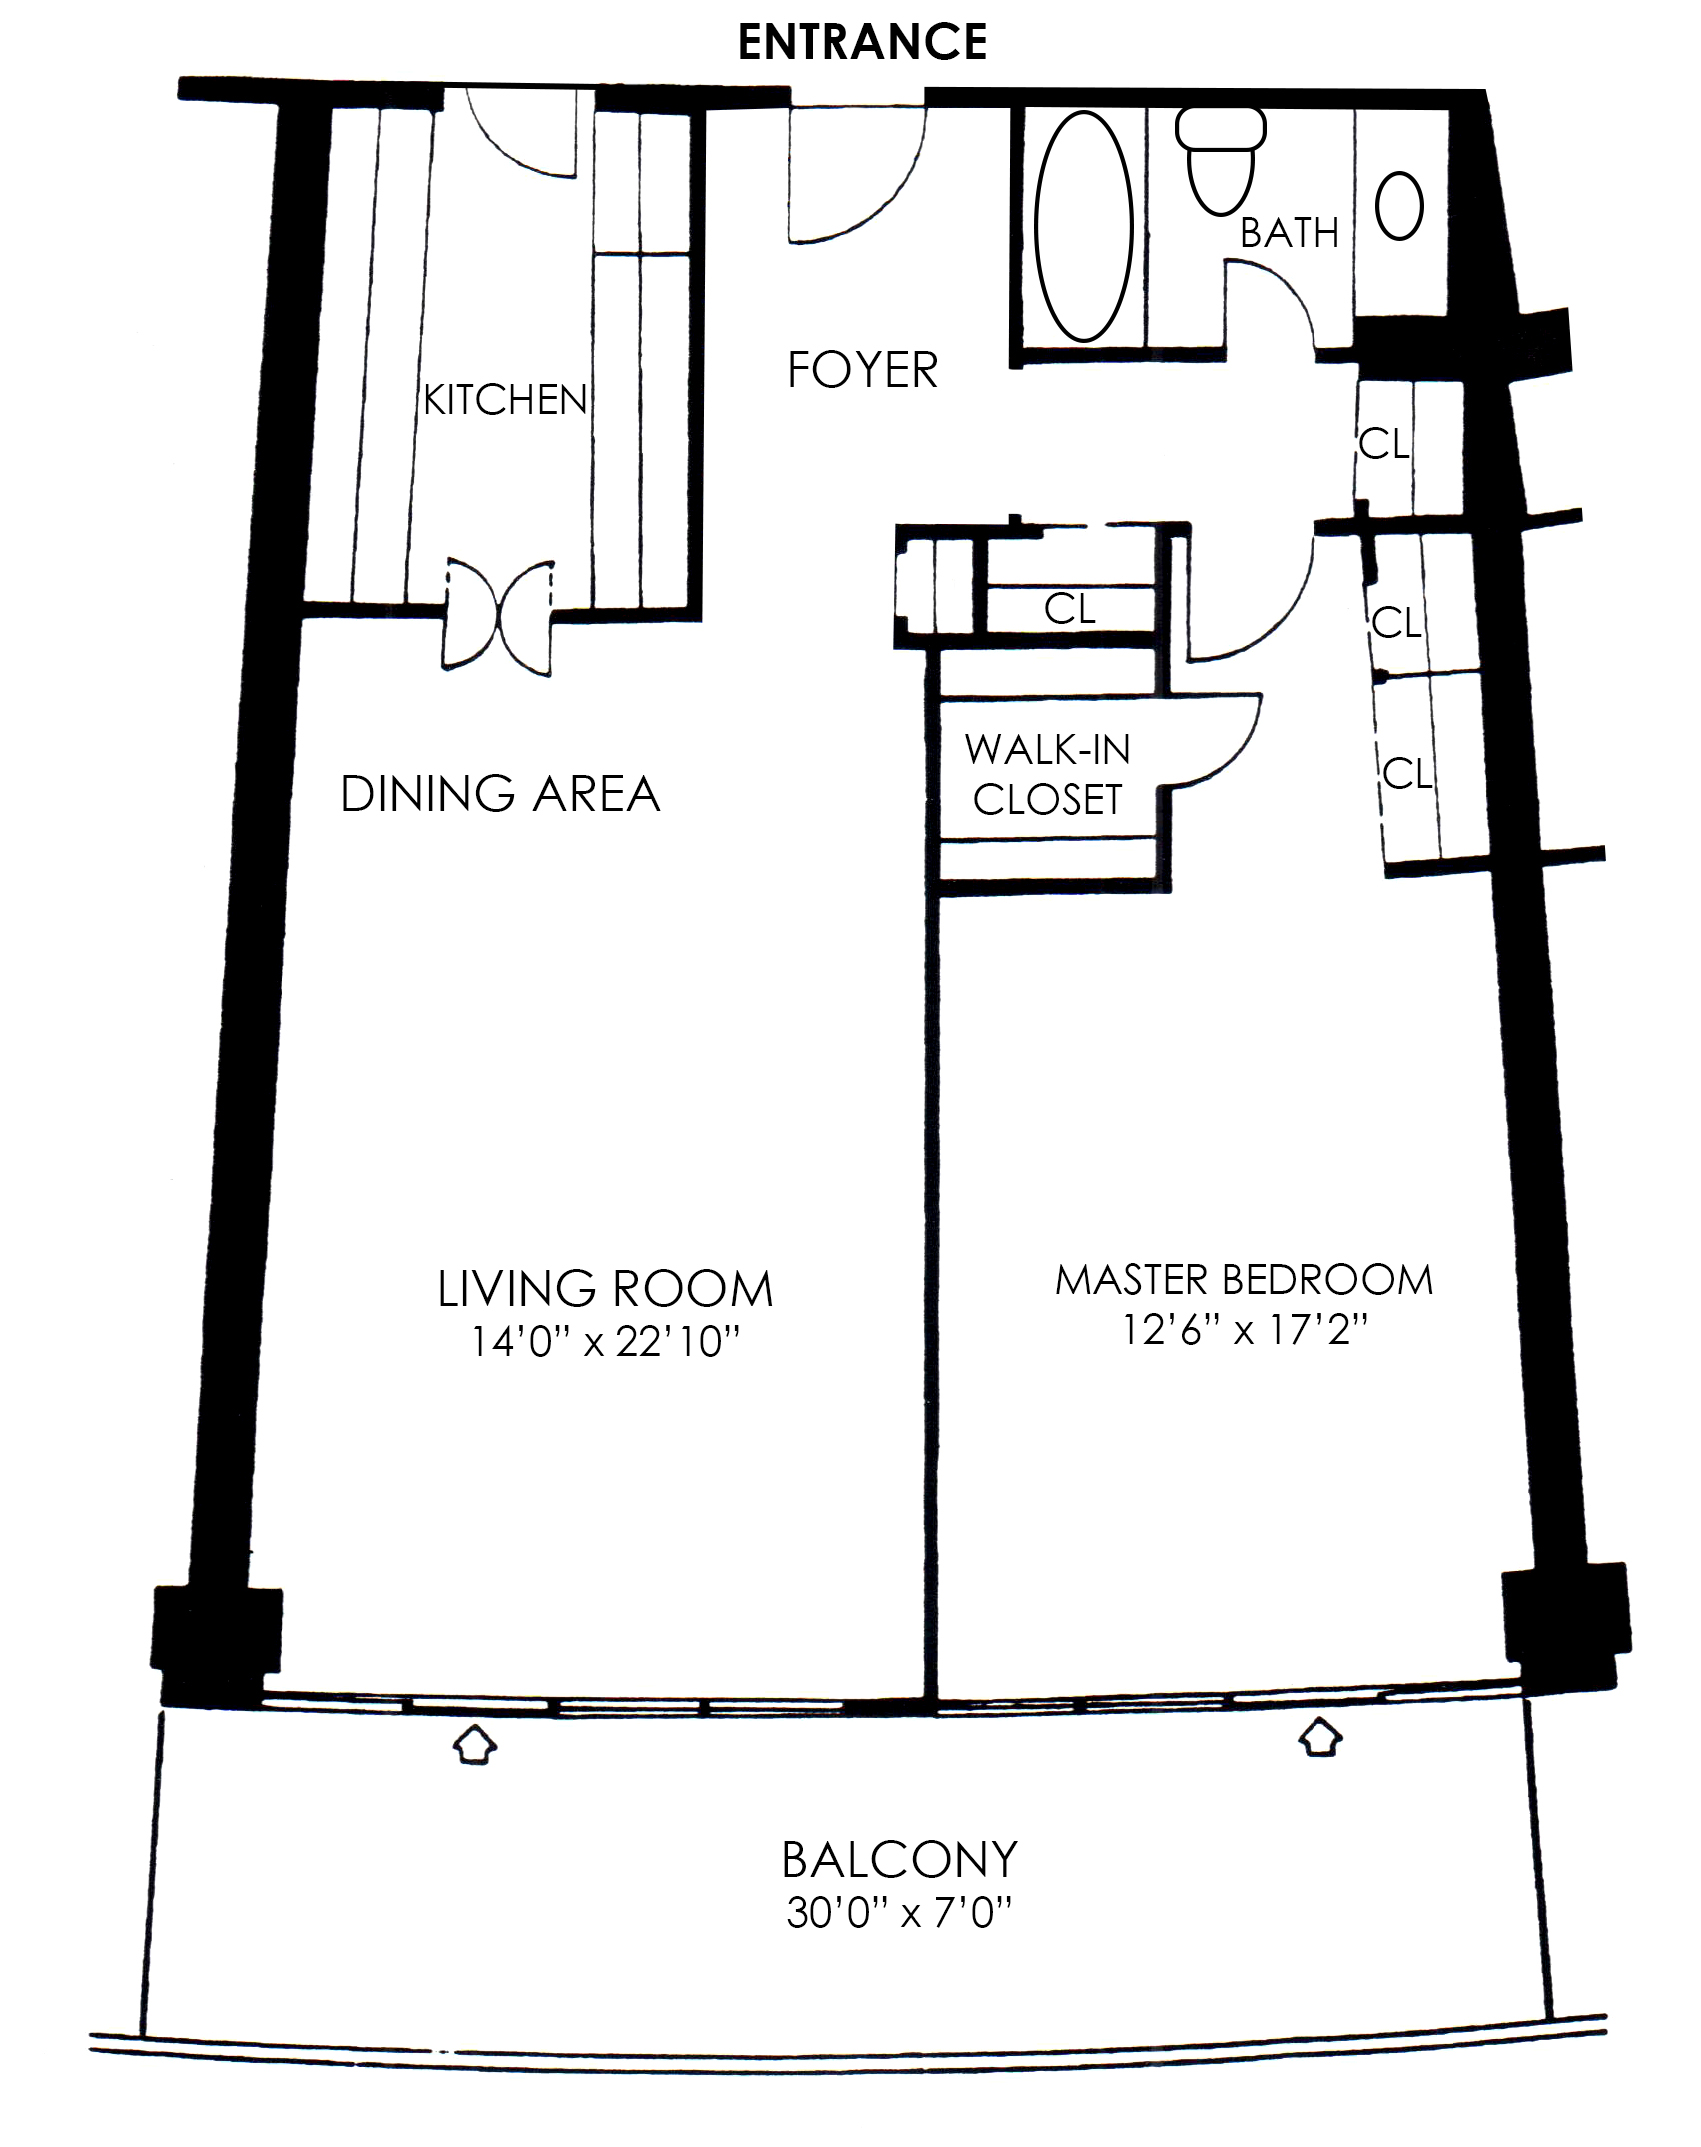 11-515 Watergate South Floor Plan.png